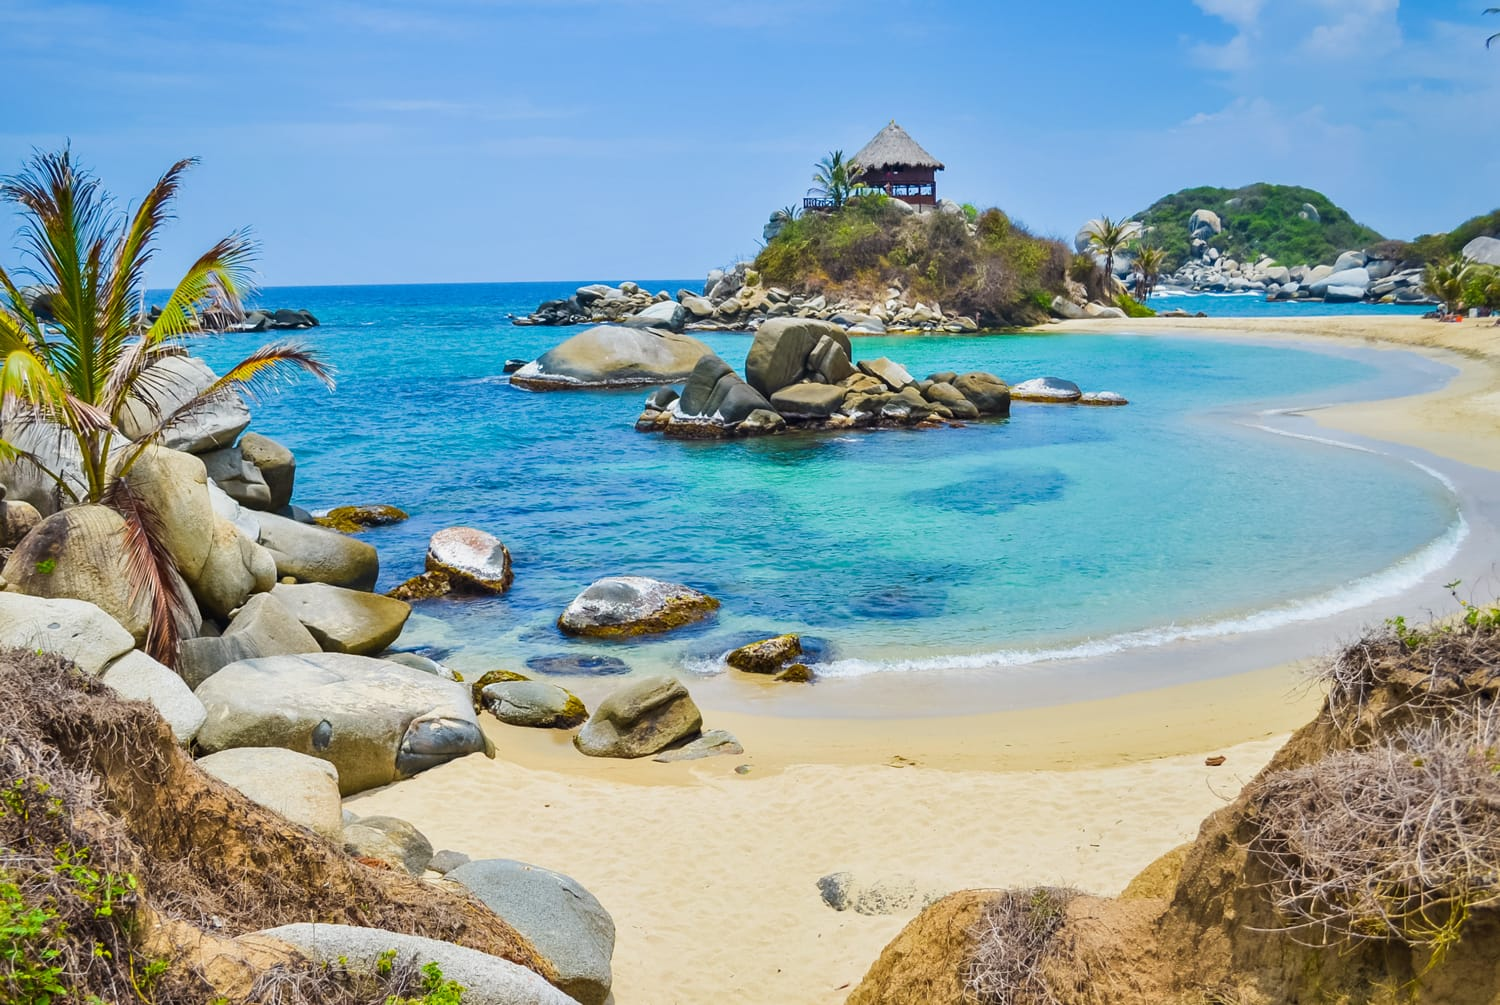 Beautiful bay with white sand beach, blue water and big boulders in Tayrona national park in Colombia